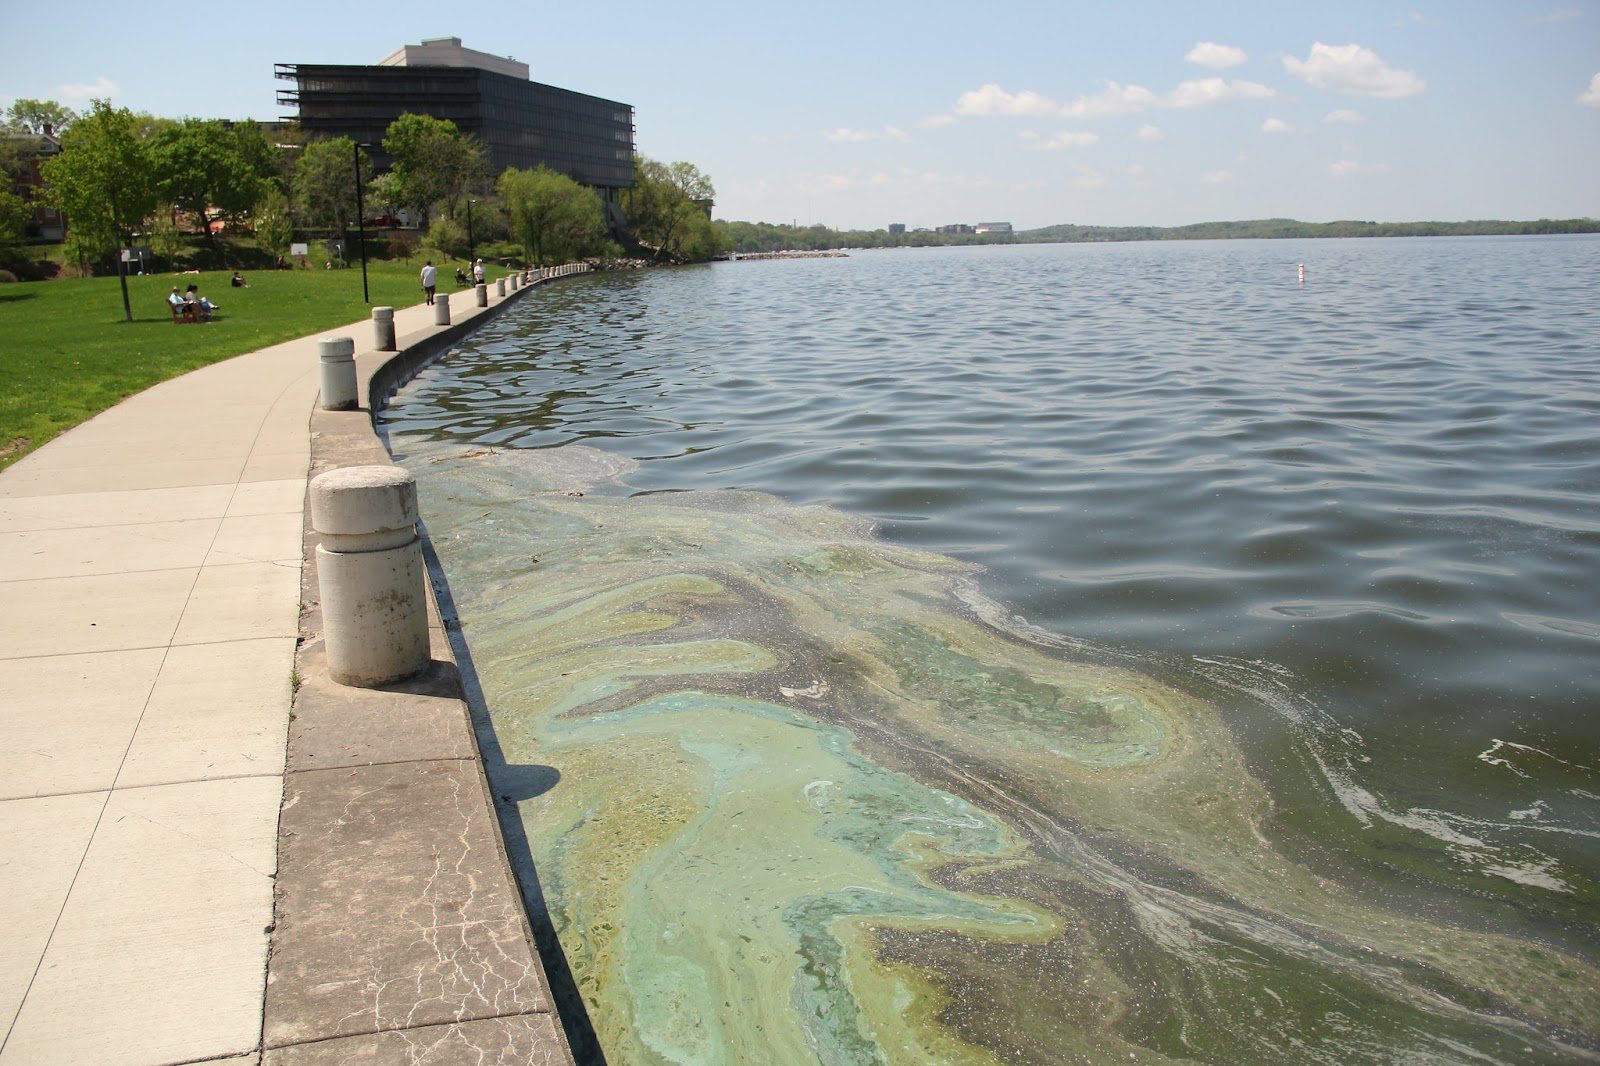 Cyanobacteria bloom at James Madison Park in Madison